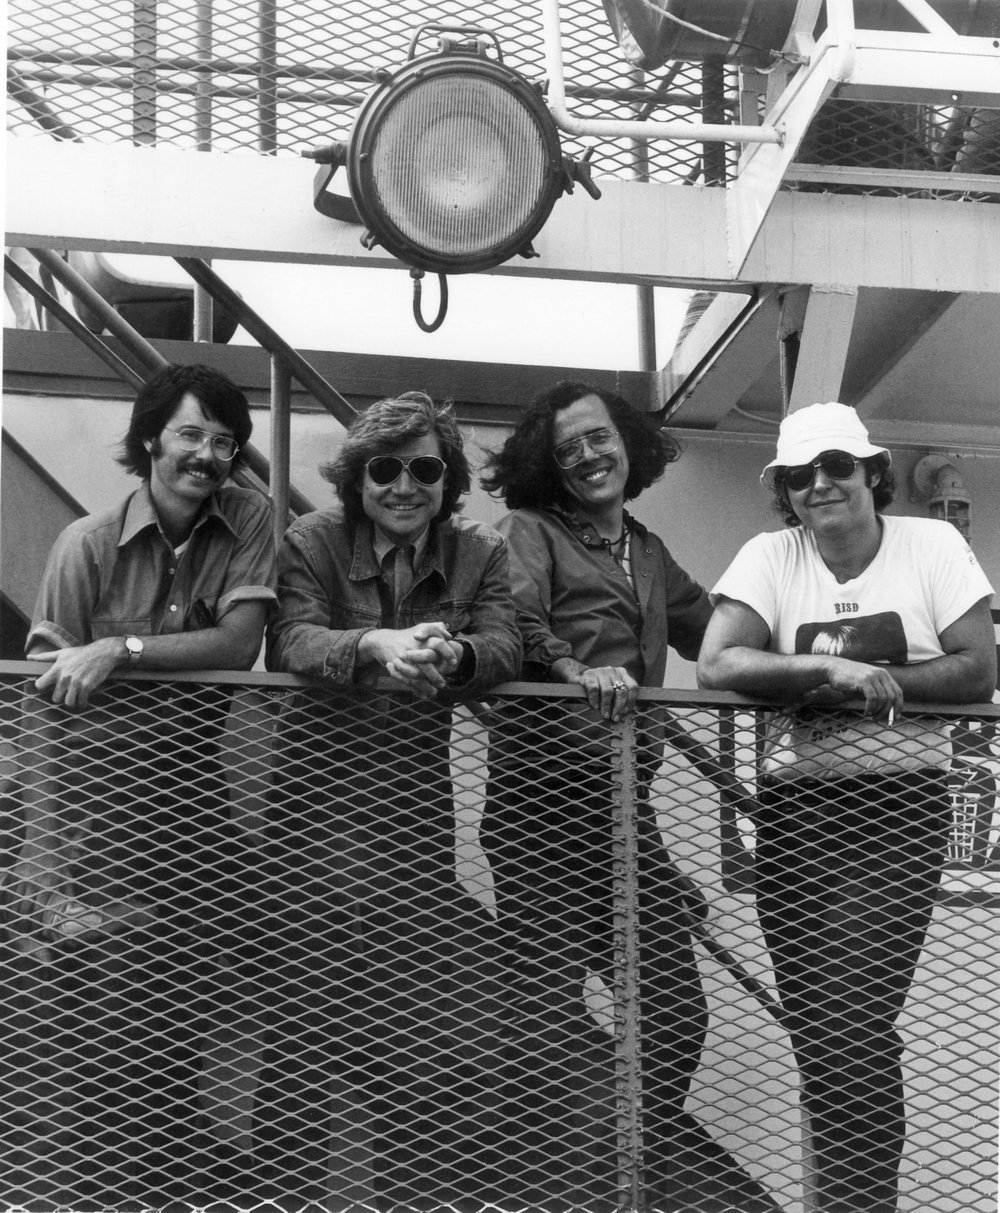 As Chairman of the Freshman Foundation Division and Director of the Summer Transfer program at RISD, JU takes the students and faculty on a field trip aboard the Block Island Ferry. Jerry Clapsaddle, JU, Earl Powell, Alfred DeCredico. Summer 1973